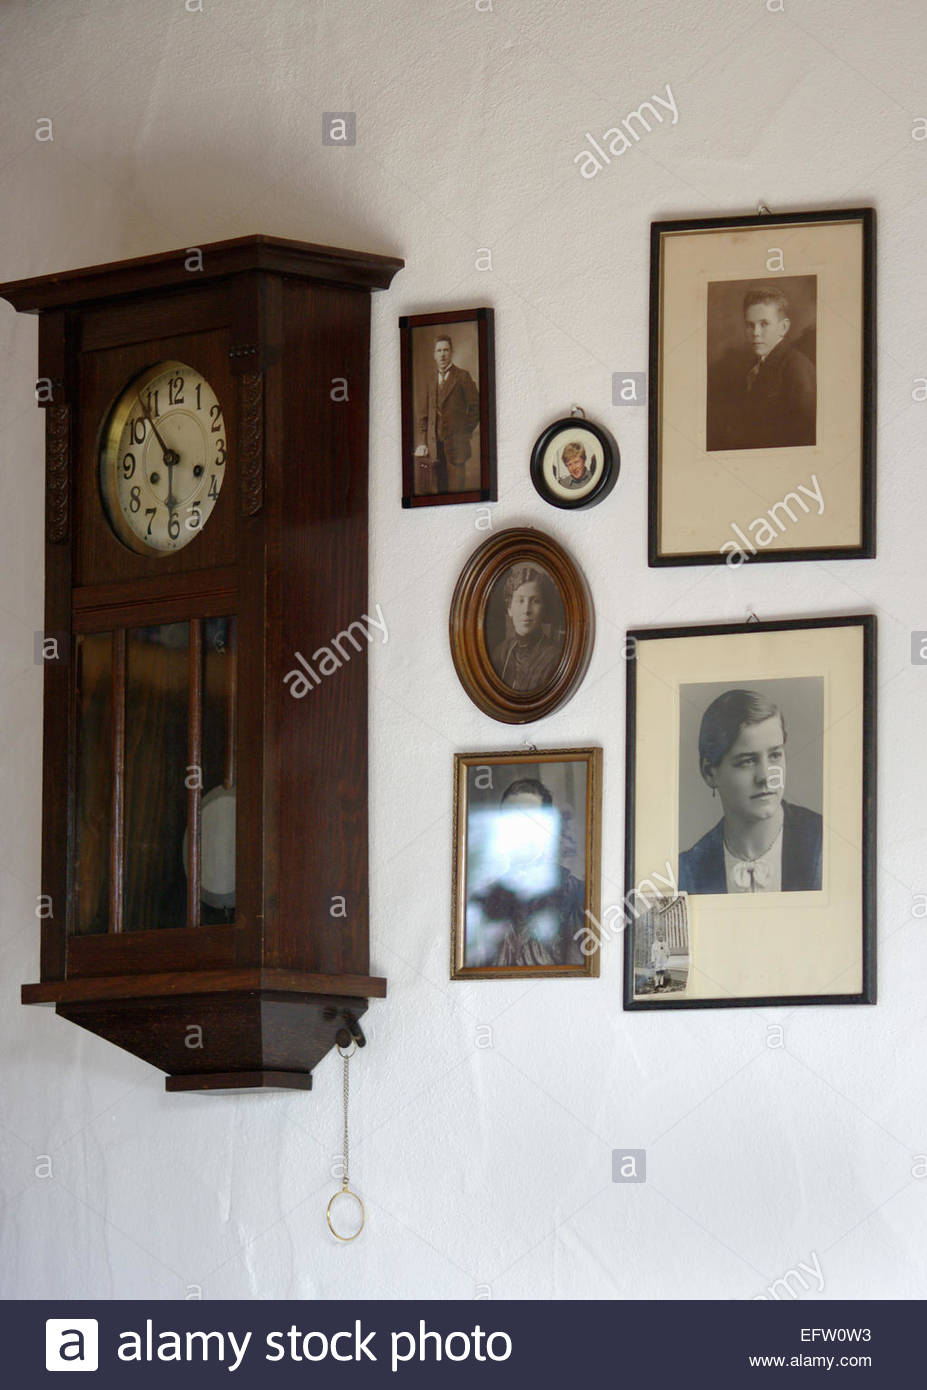 Grandfather Clock Old Framed Photographs Memories Wall Picture ...